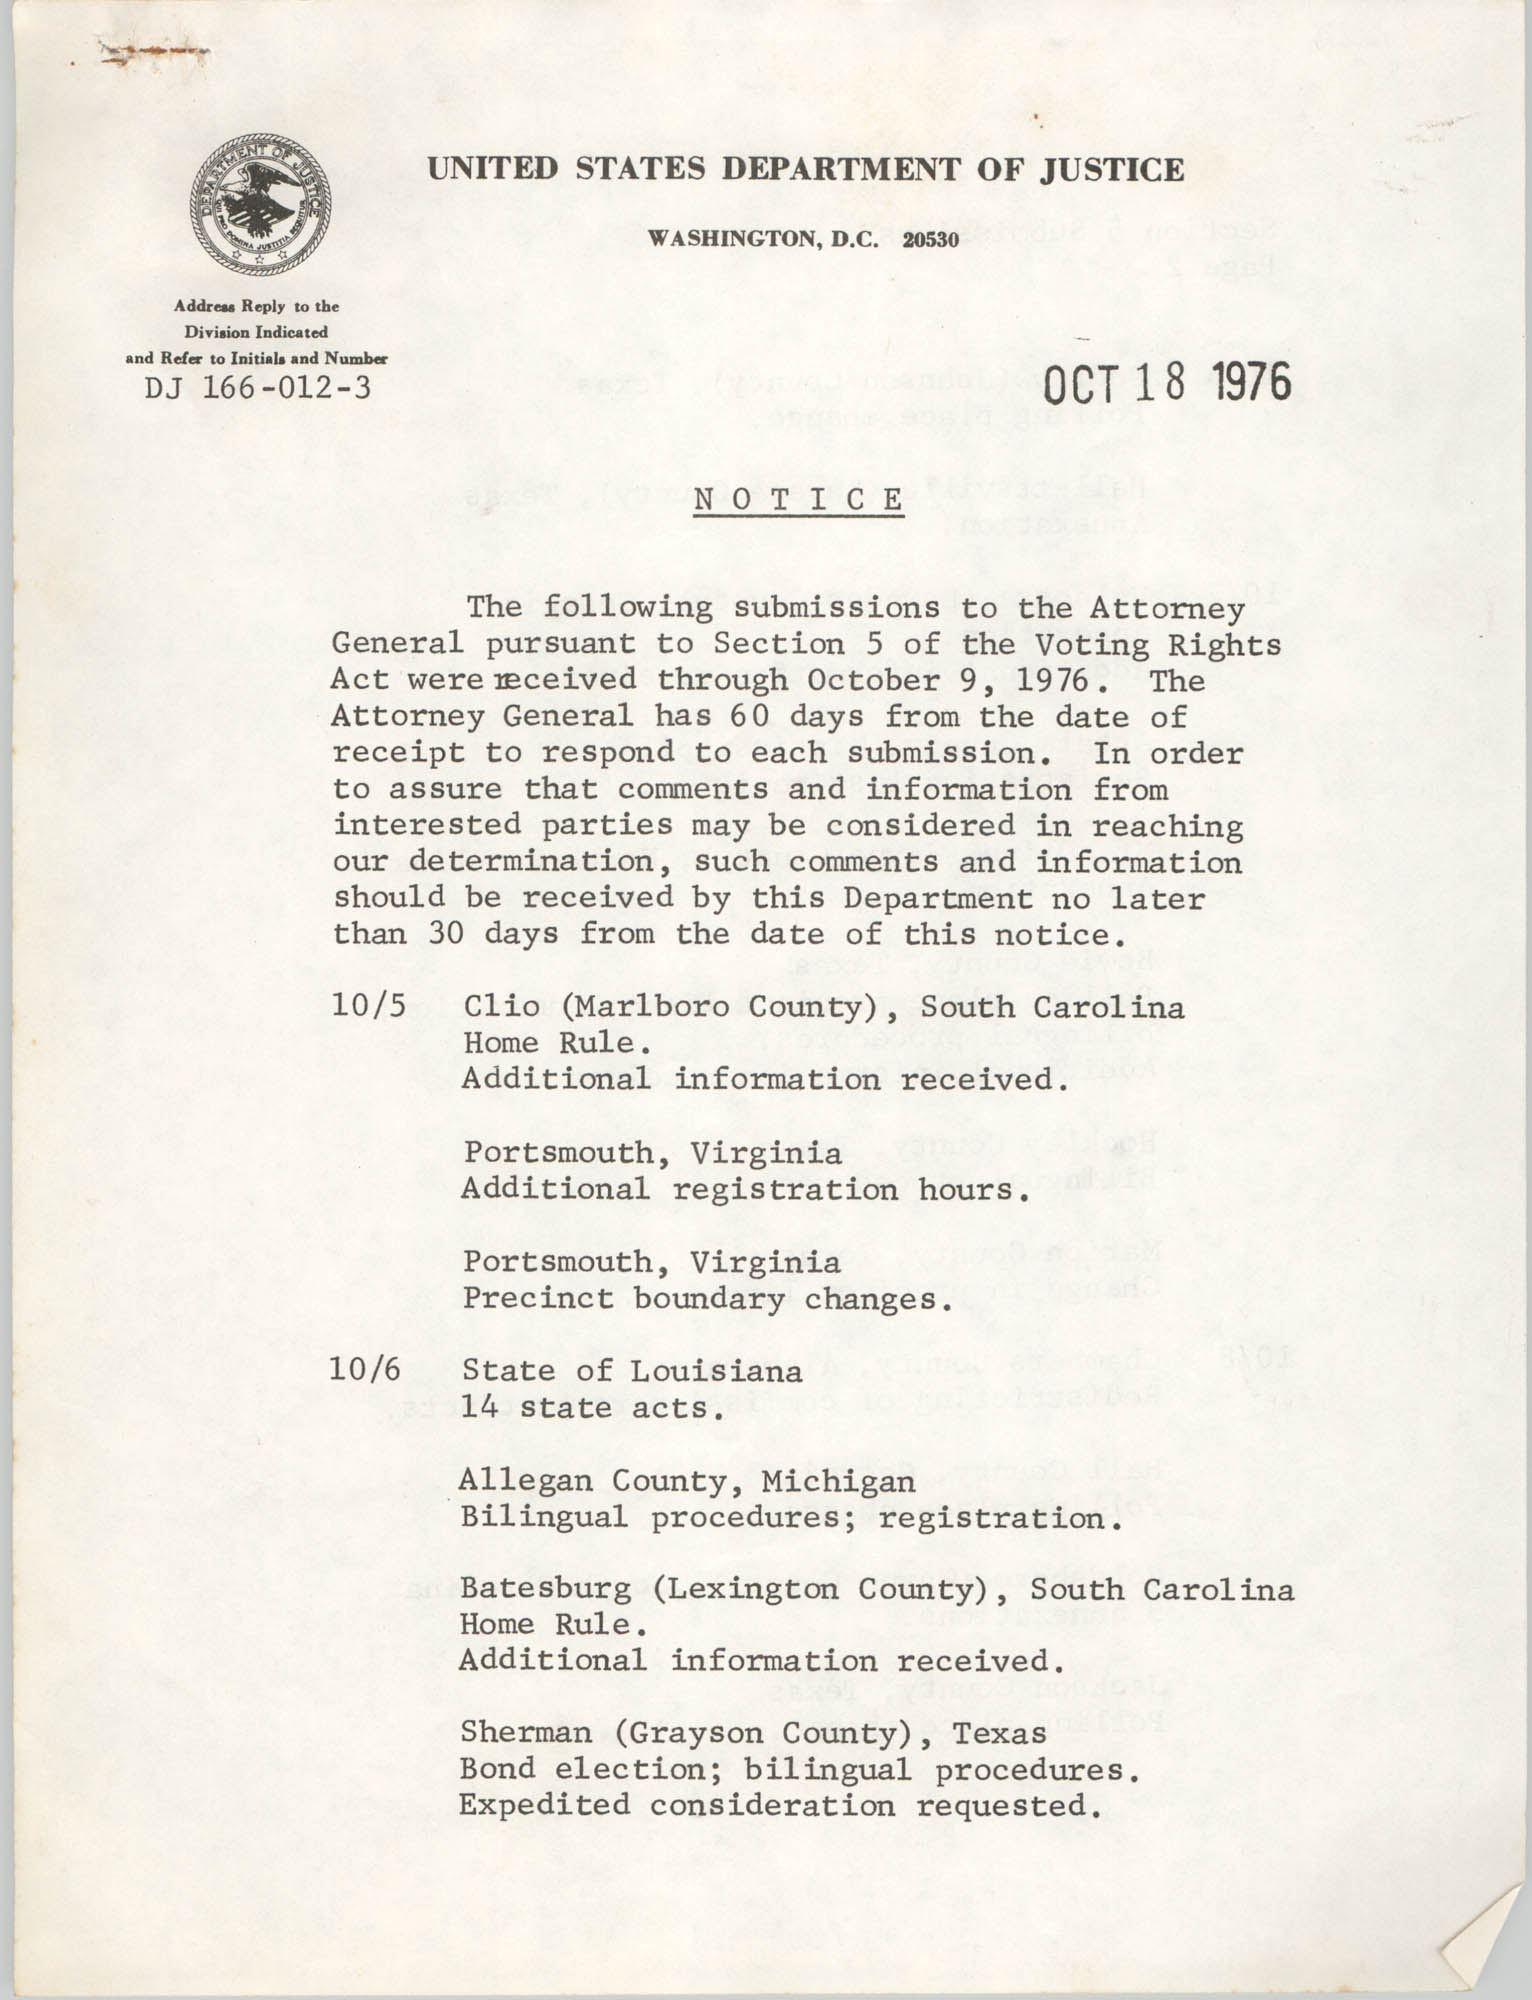 United States Department of Justice Notice, October 18, 1976